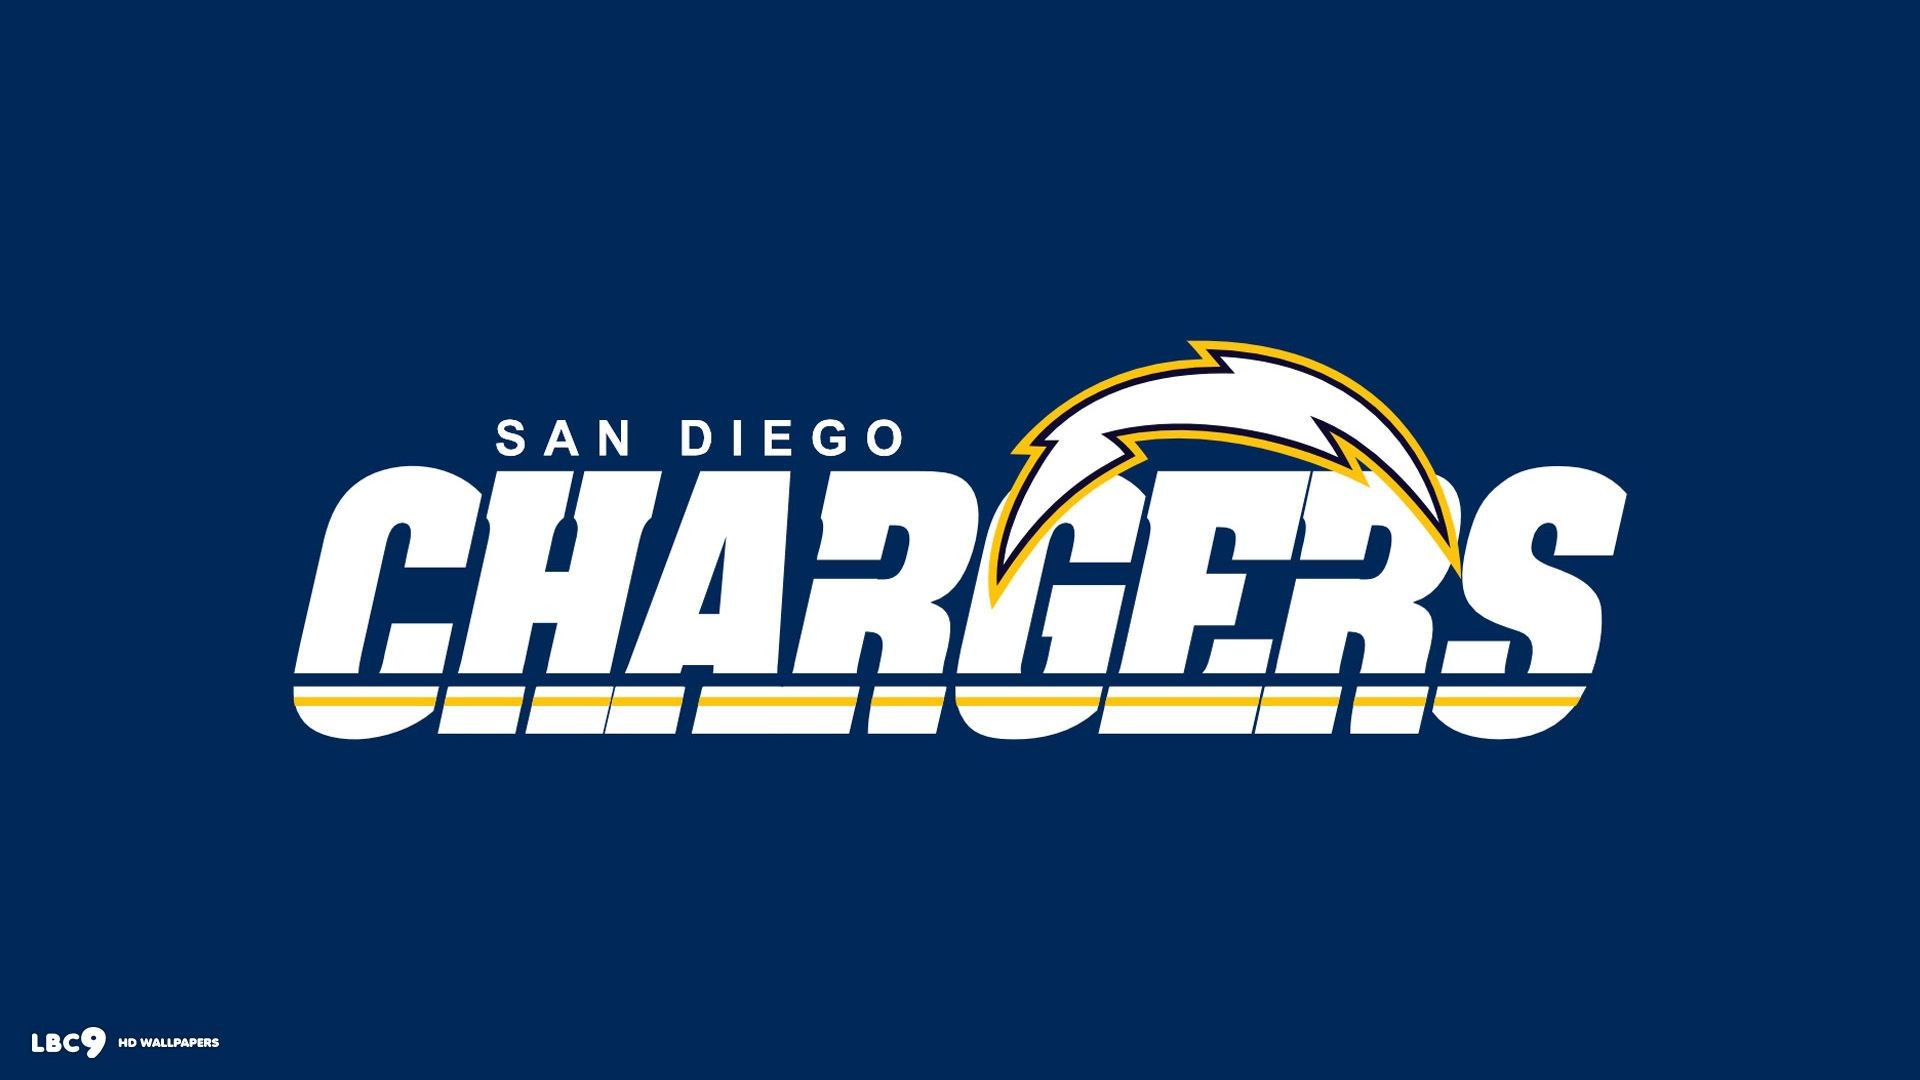 1920x1080 San diego chargers wallpapers.